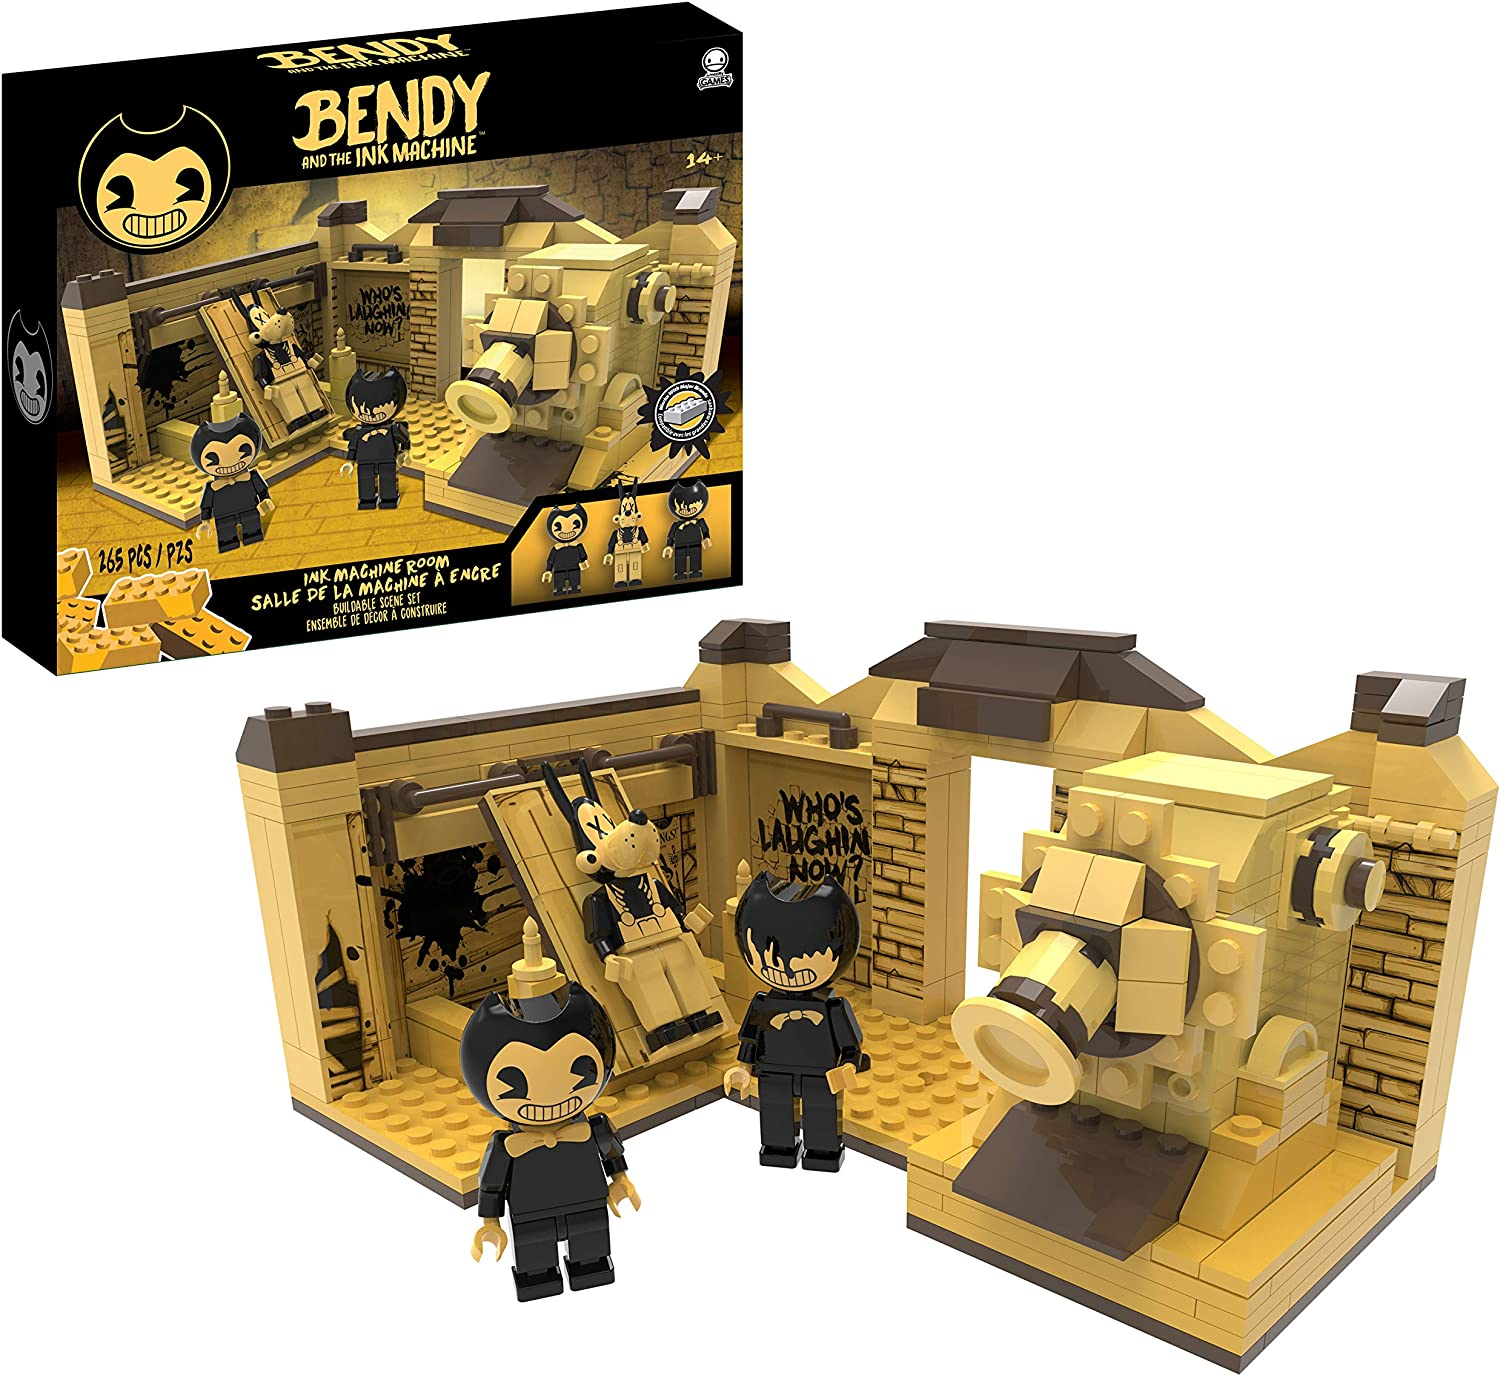 Bendy and the Ink Machine - Room Scene (265 pieces)